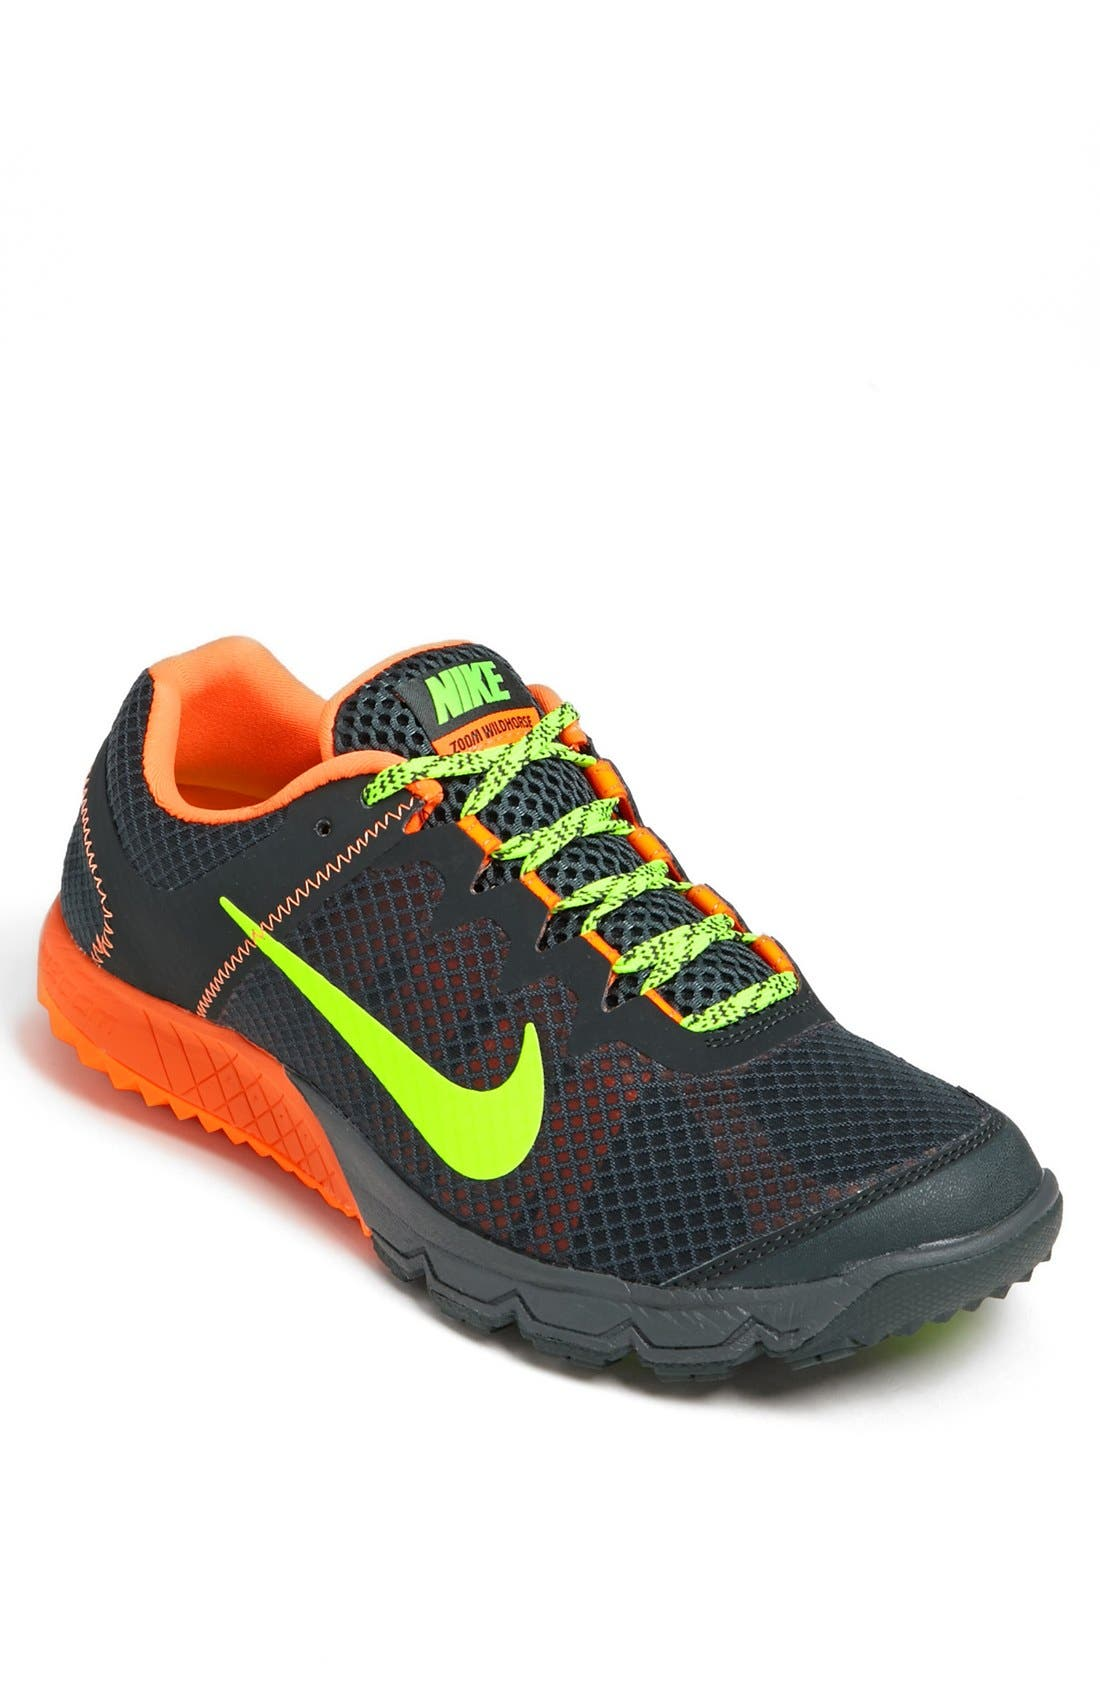 Main Image - Nike 'Zoom Wildhorse' Trail Running Shoe (Men)